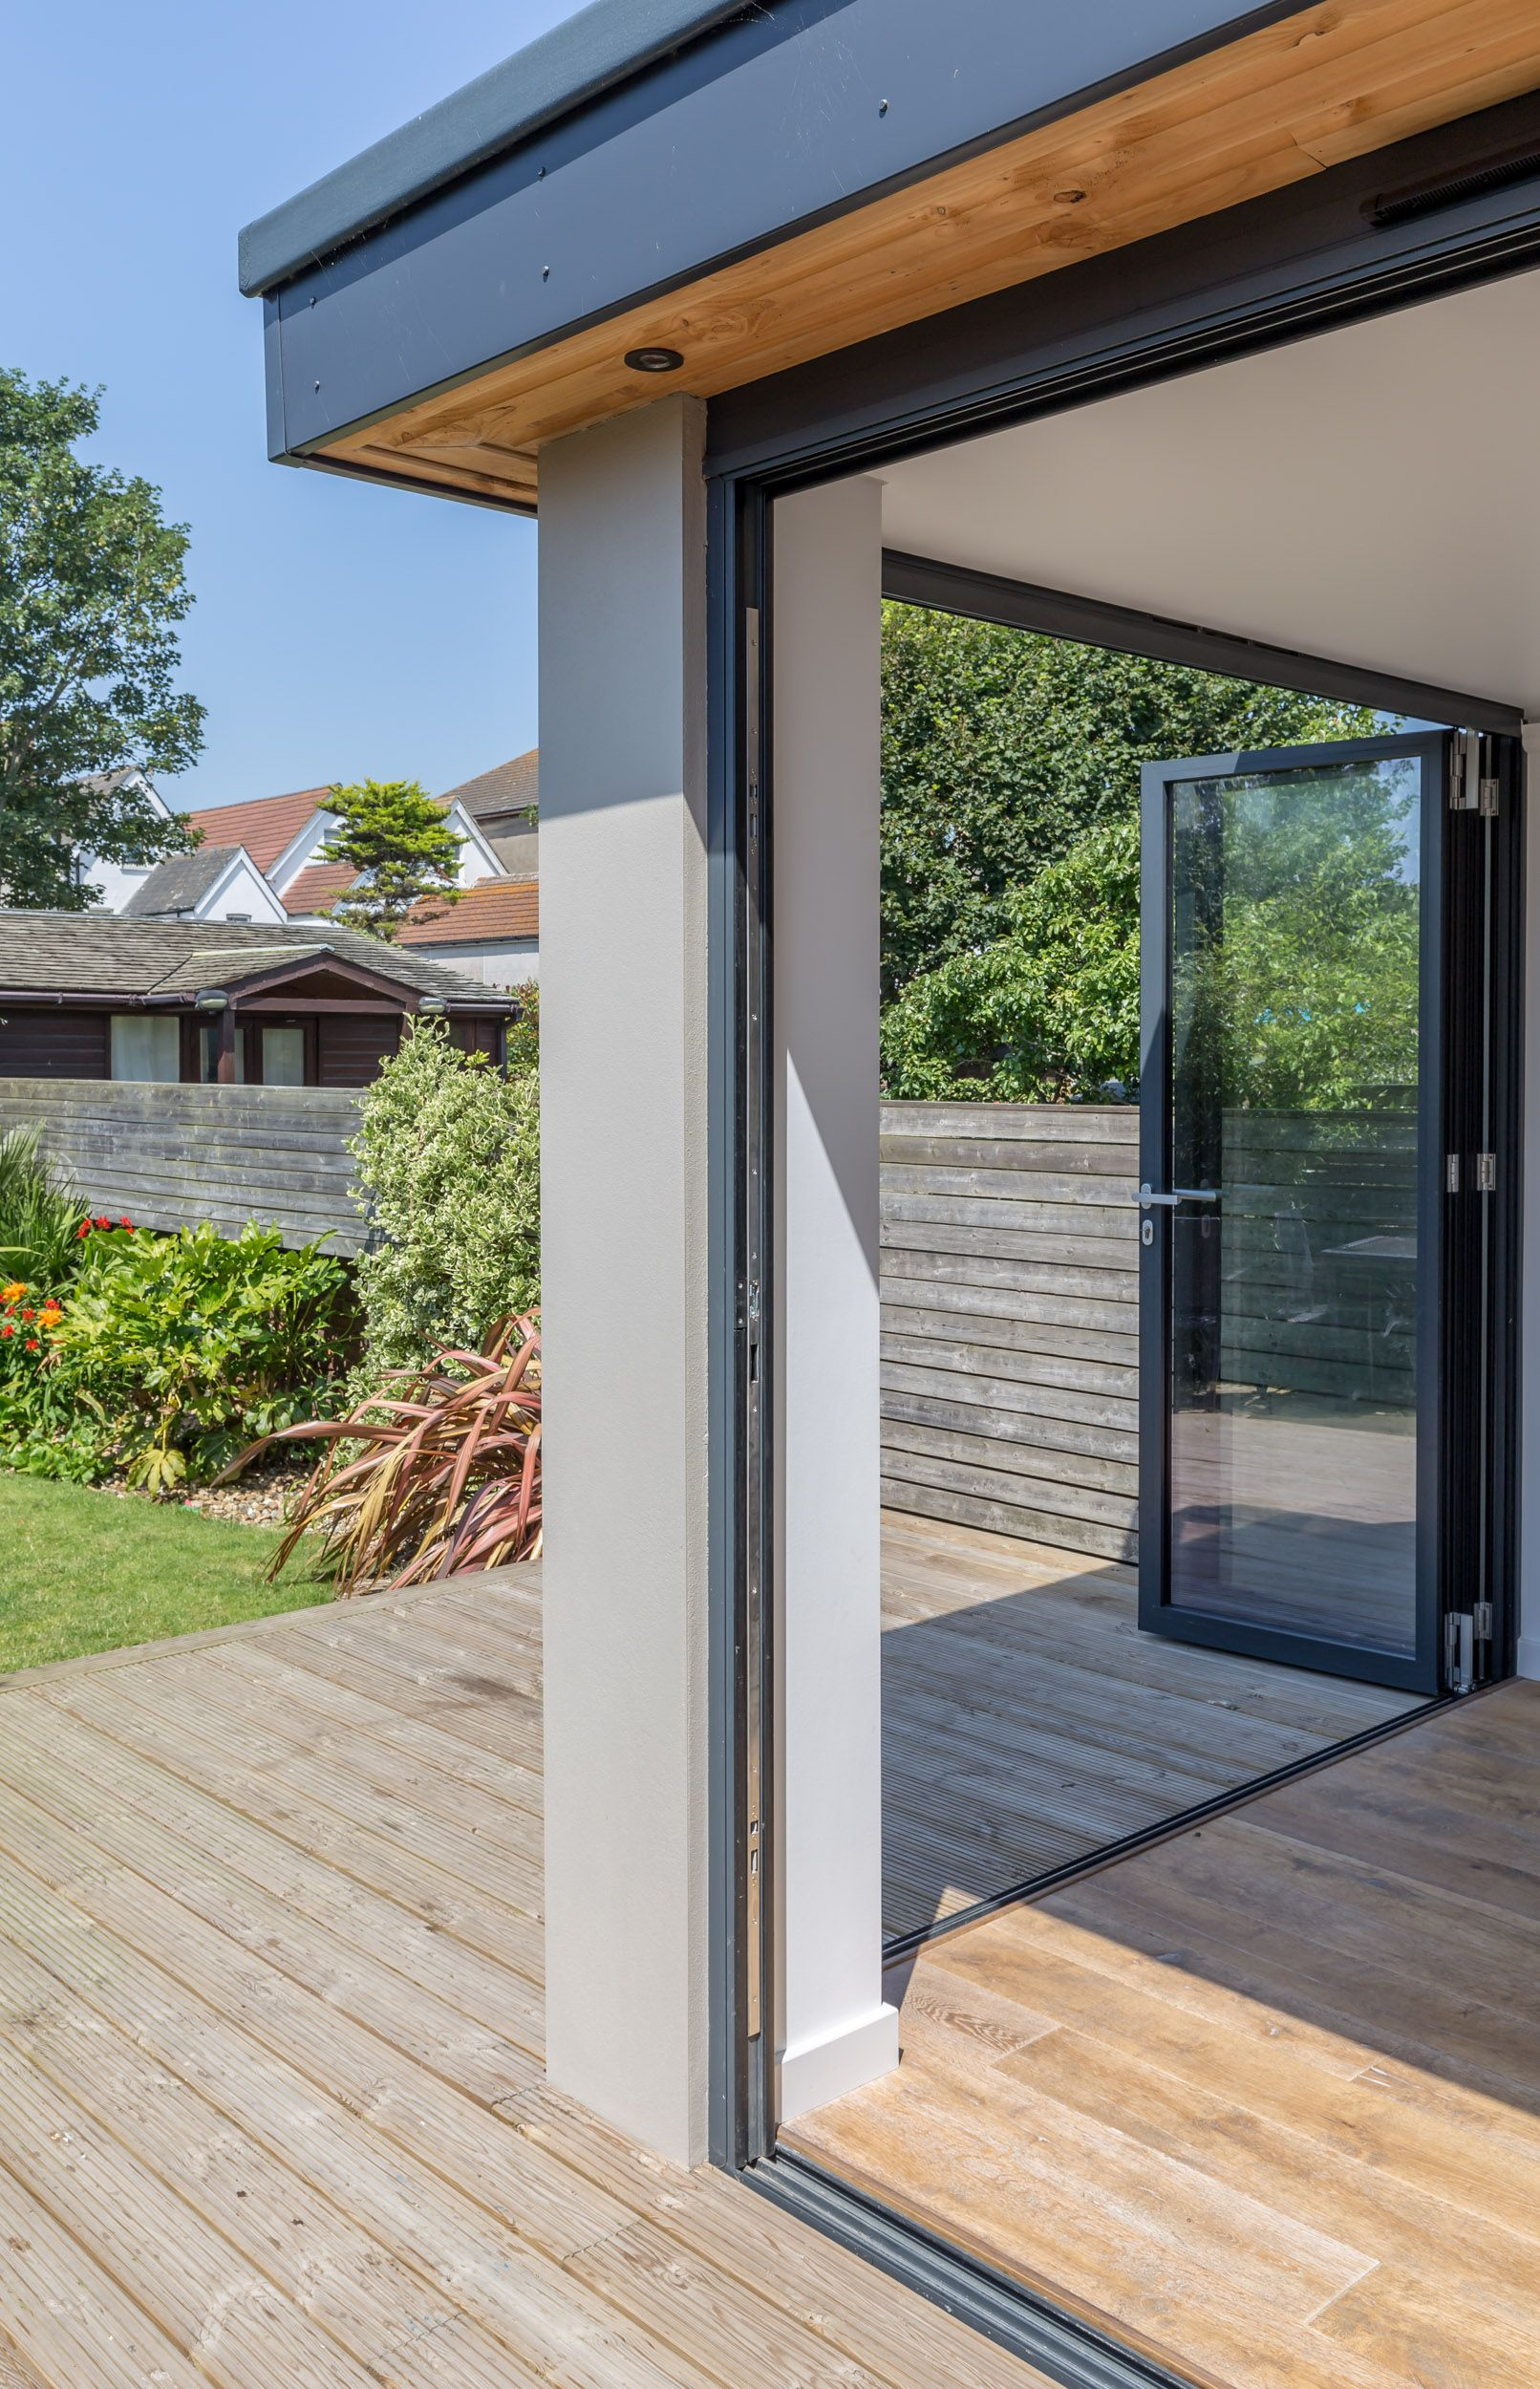 Residential Extension | Corner Opening | Flat Roof Overhang Detail With  Spot Lights | Inside Outside Space | Timber Flooring / Decking | Aluminium  Bi Fold ...